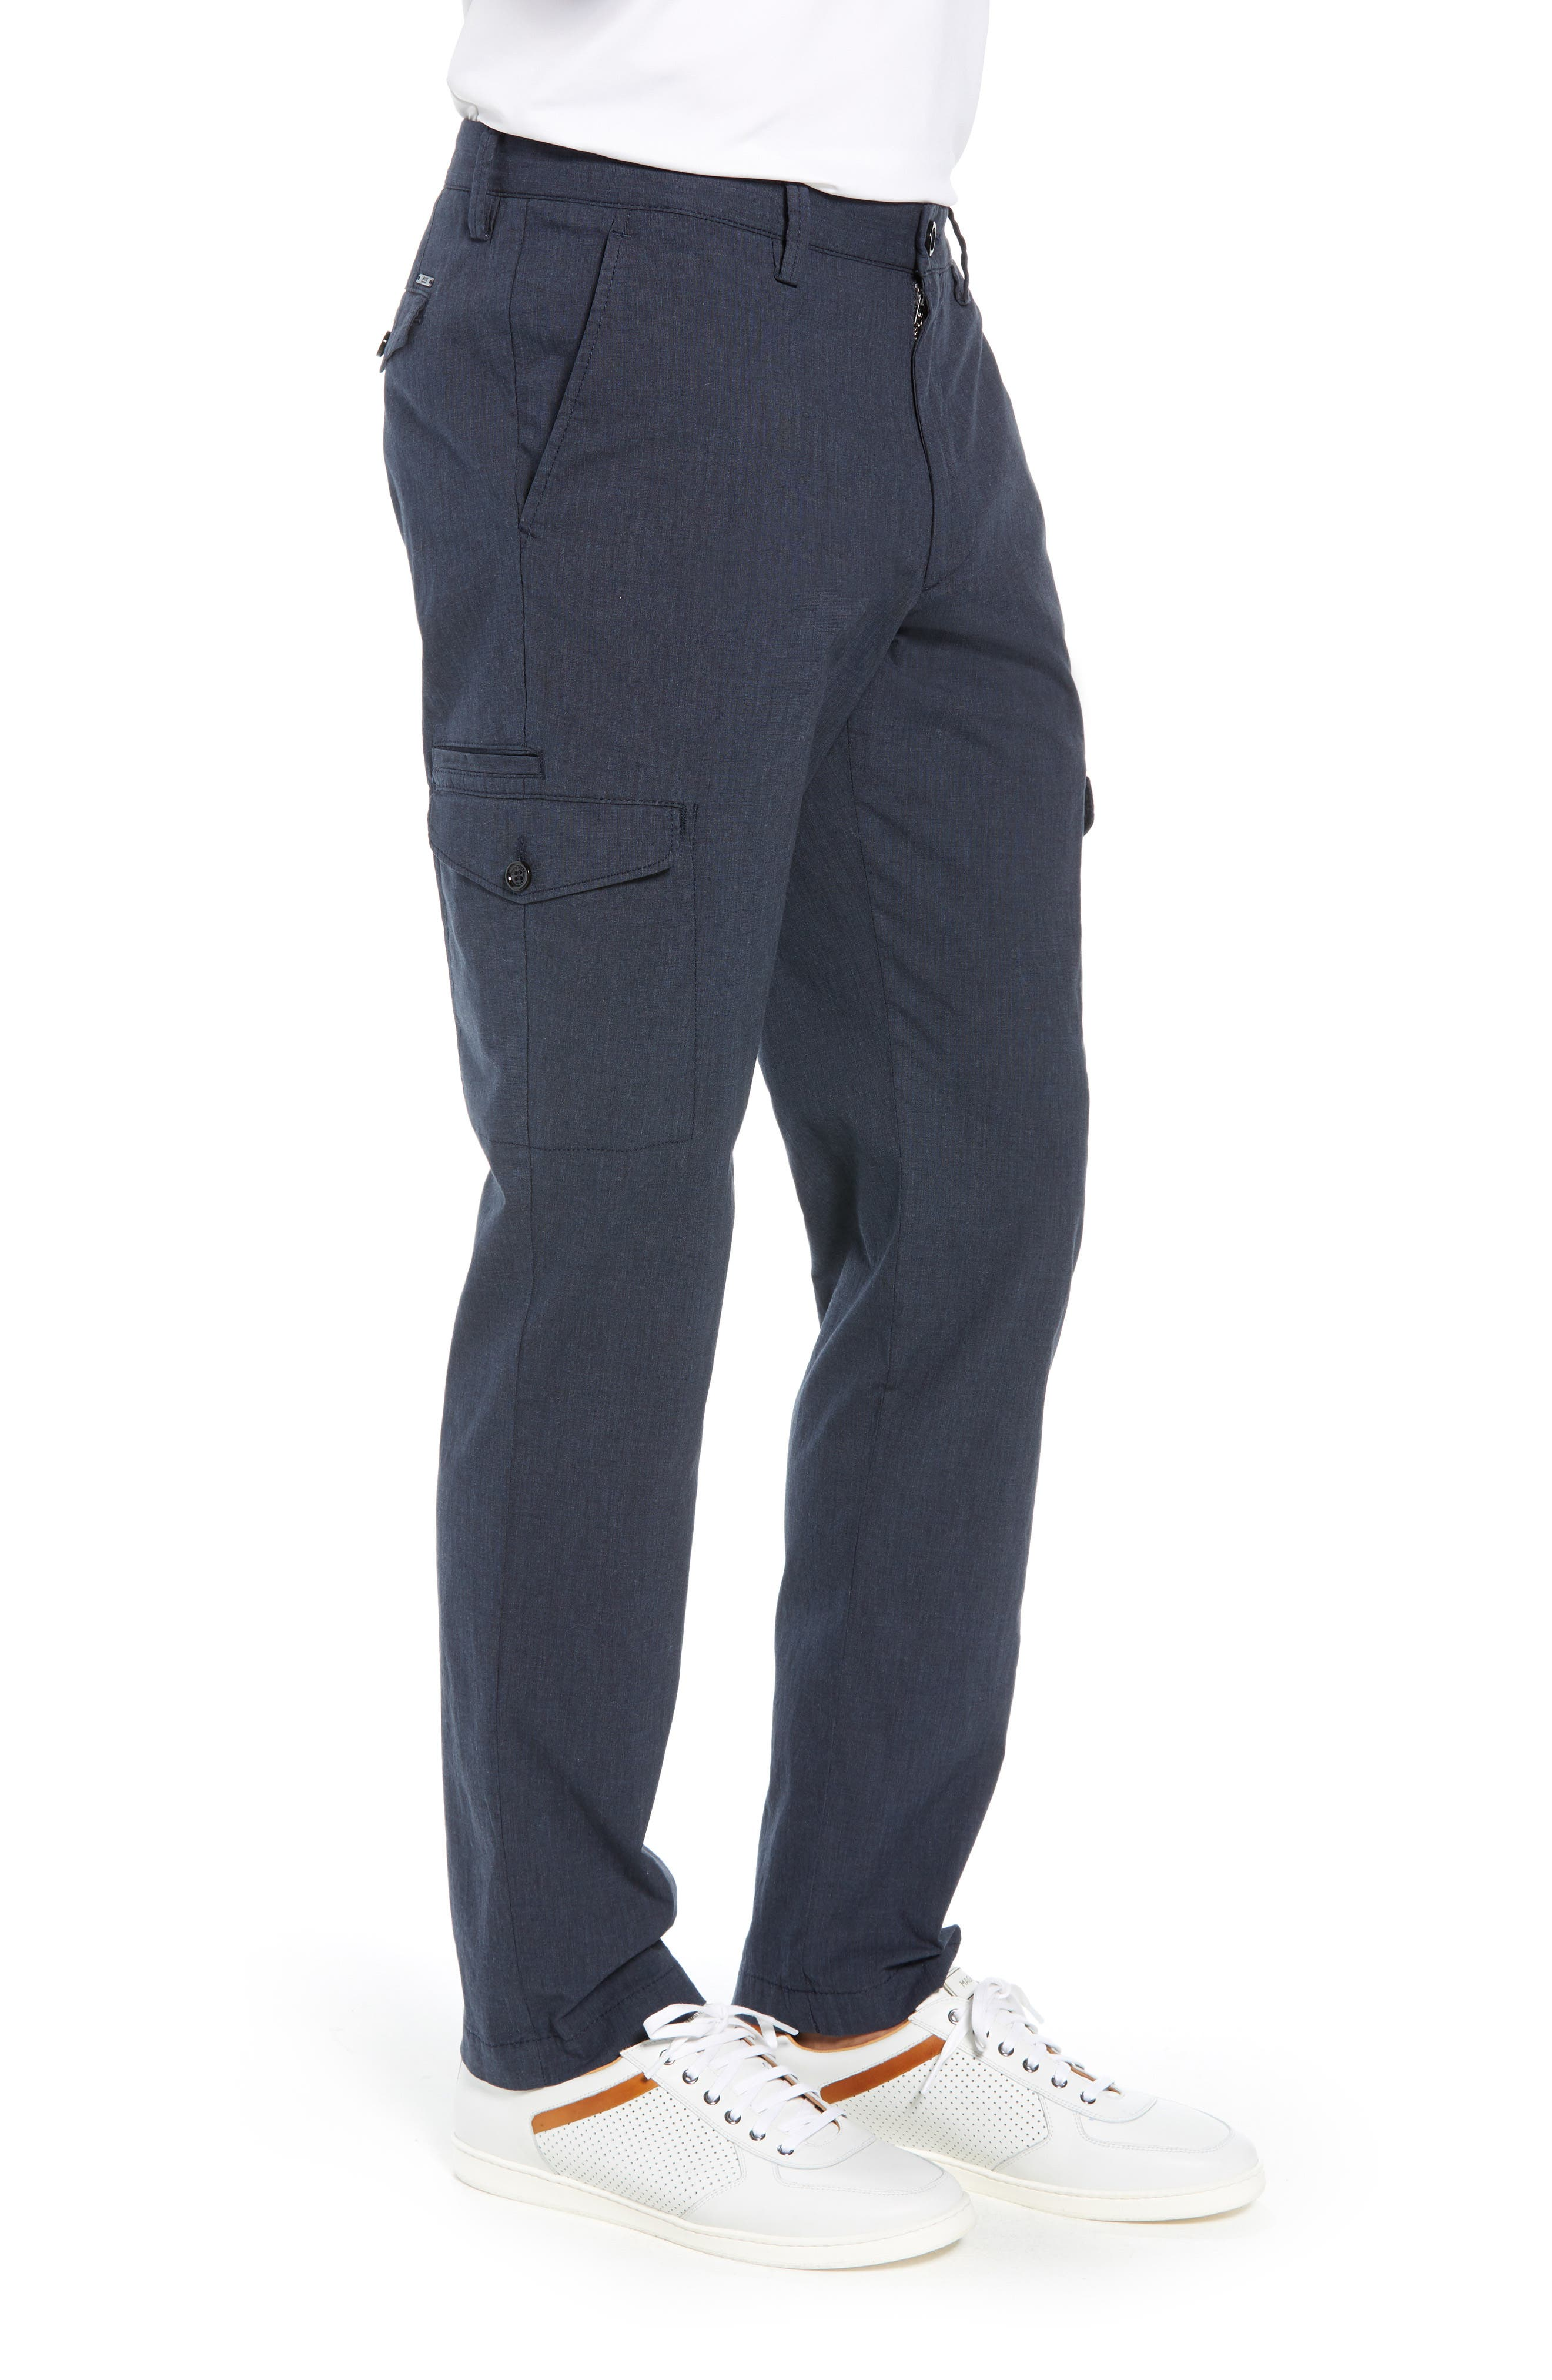 Kailo Slim Fit Cargo Pants,                             Alternate thumbnail 3, color,                             480